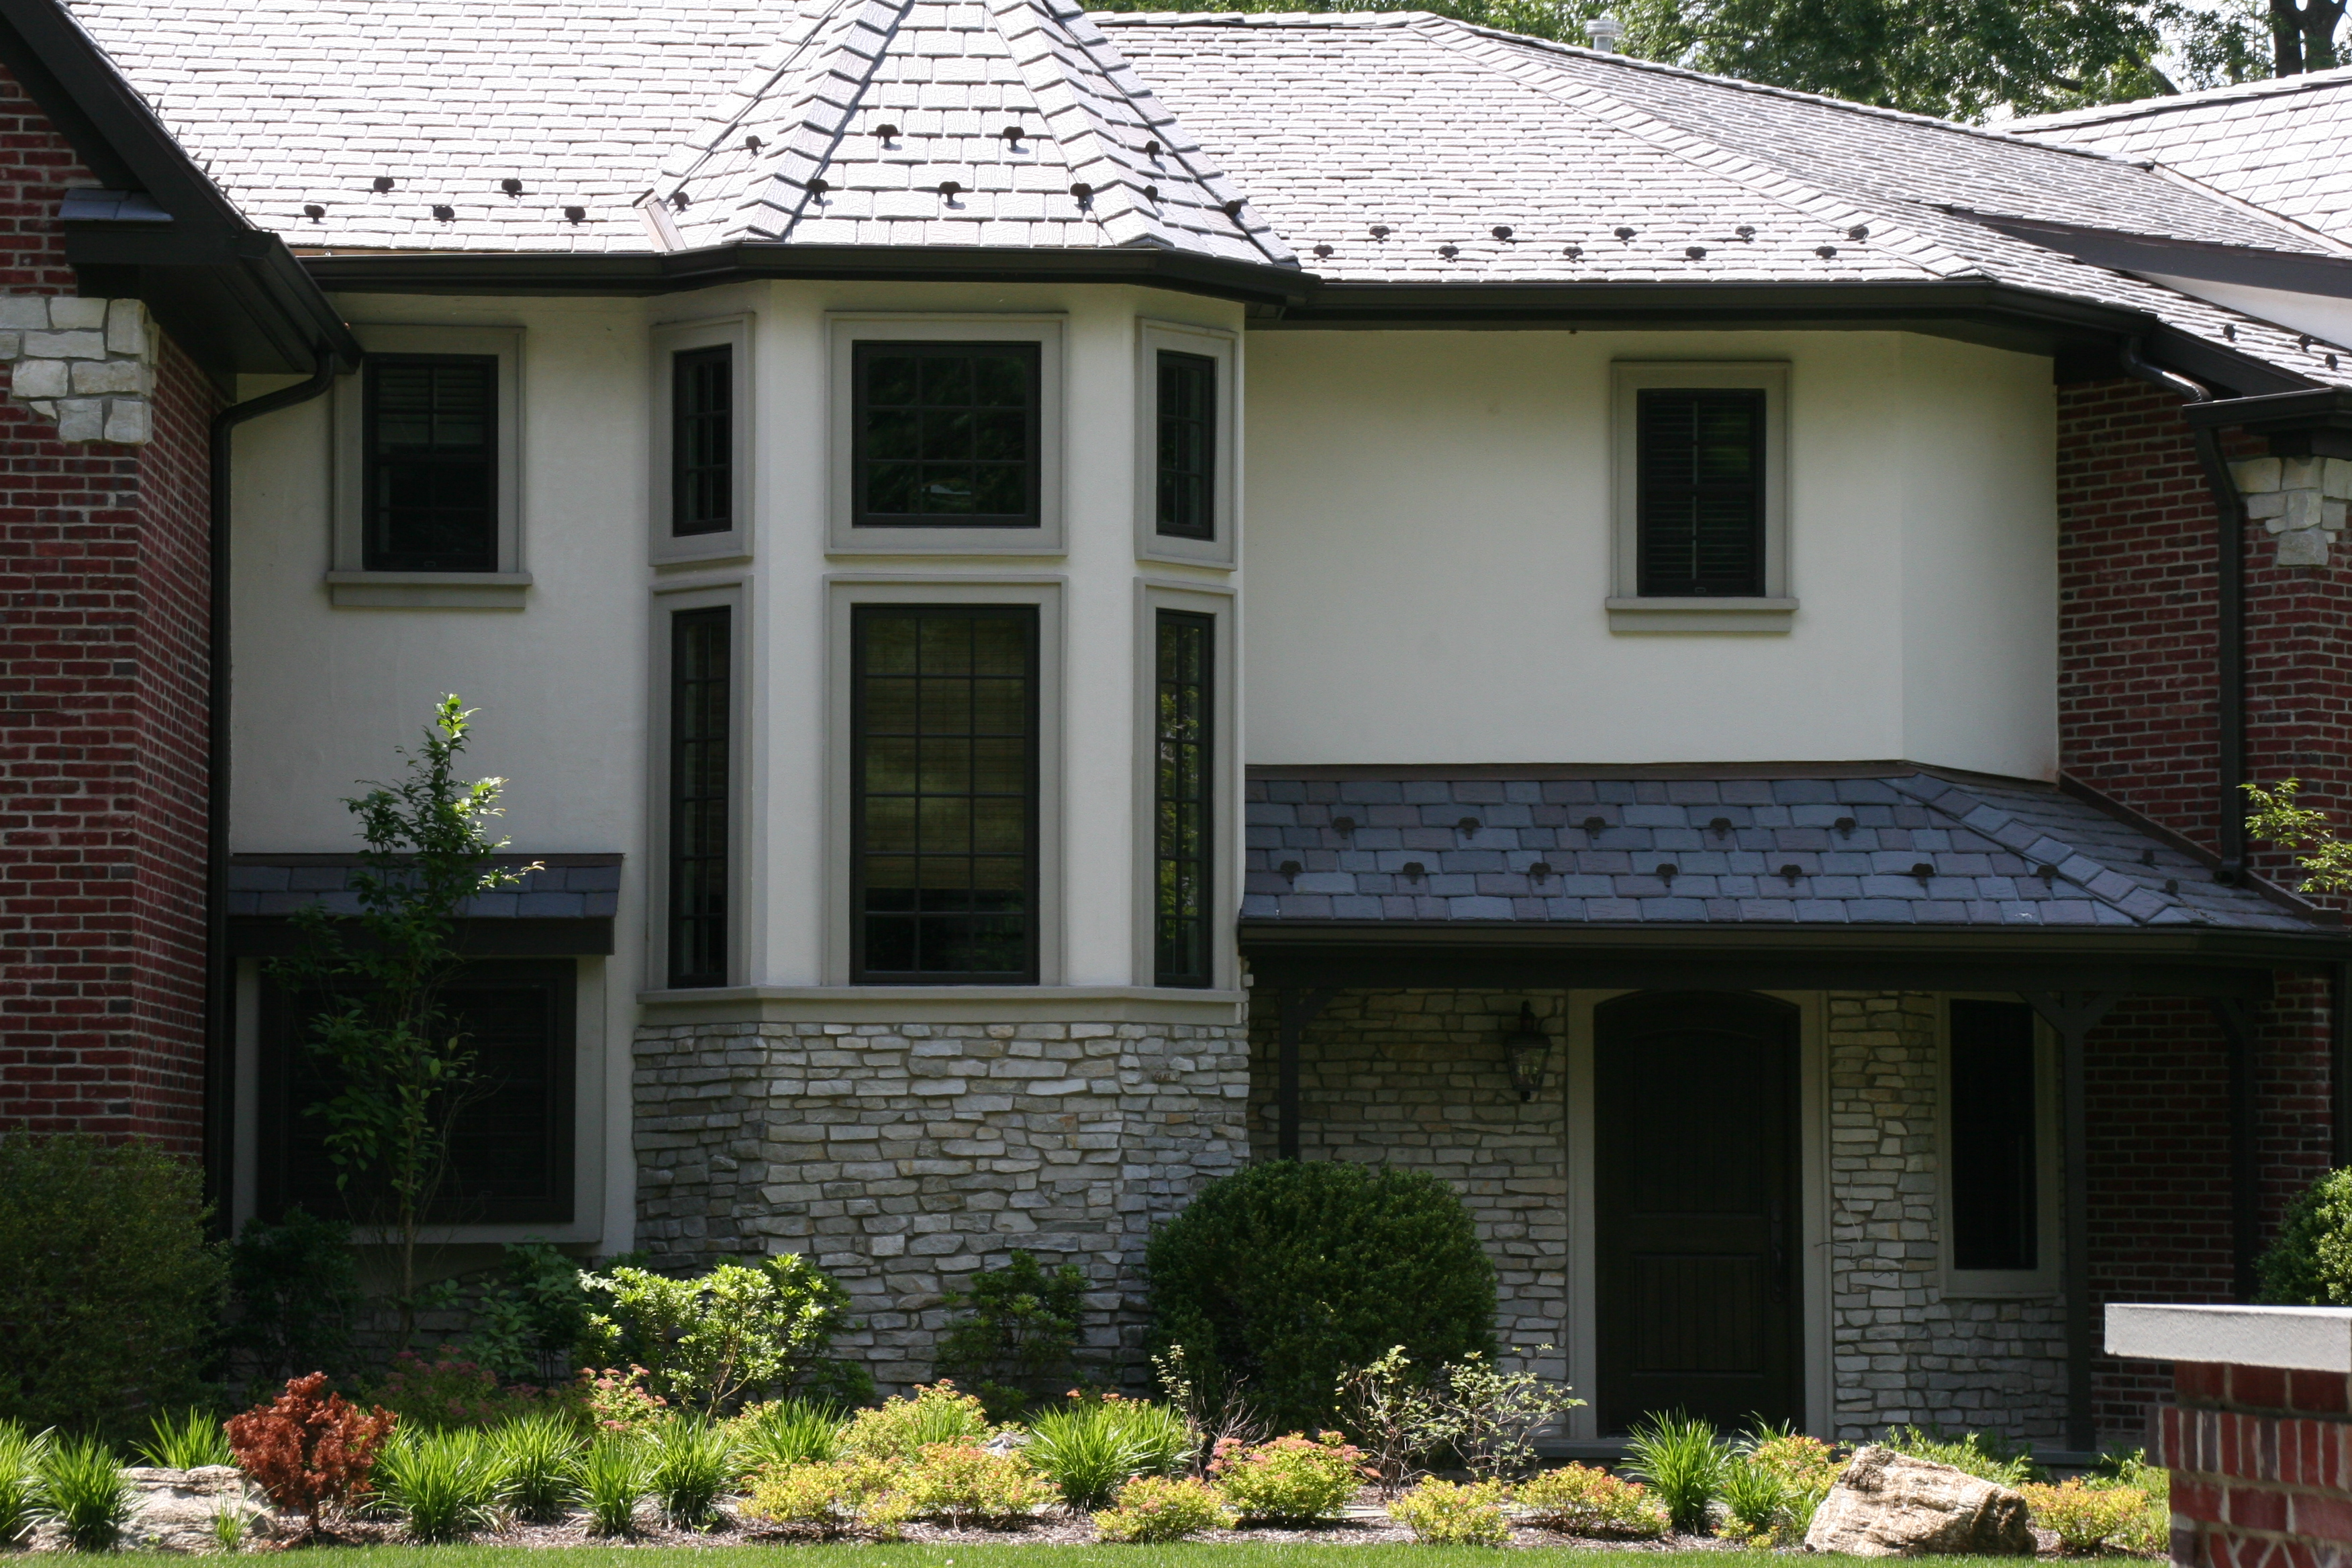 Hardcoat acrylic stucco with custom window trim.